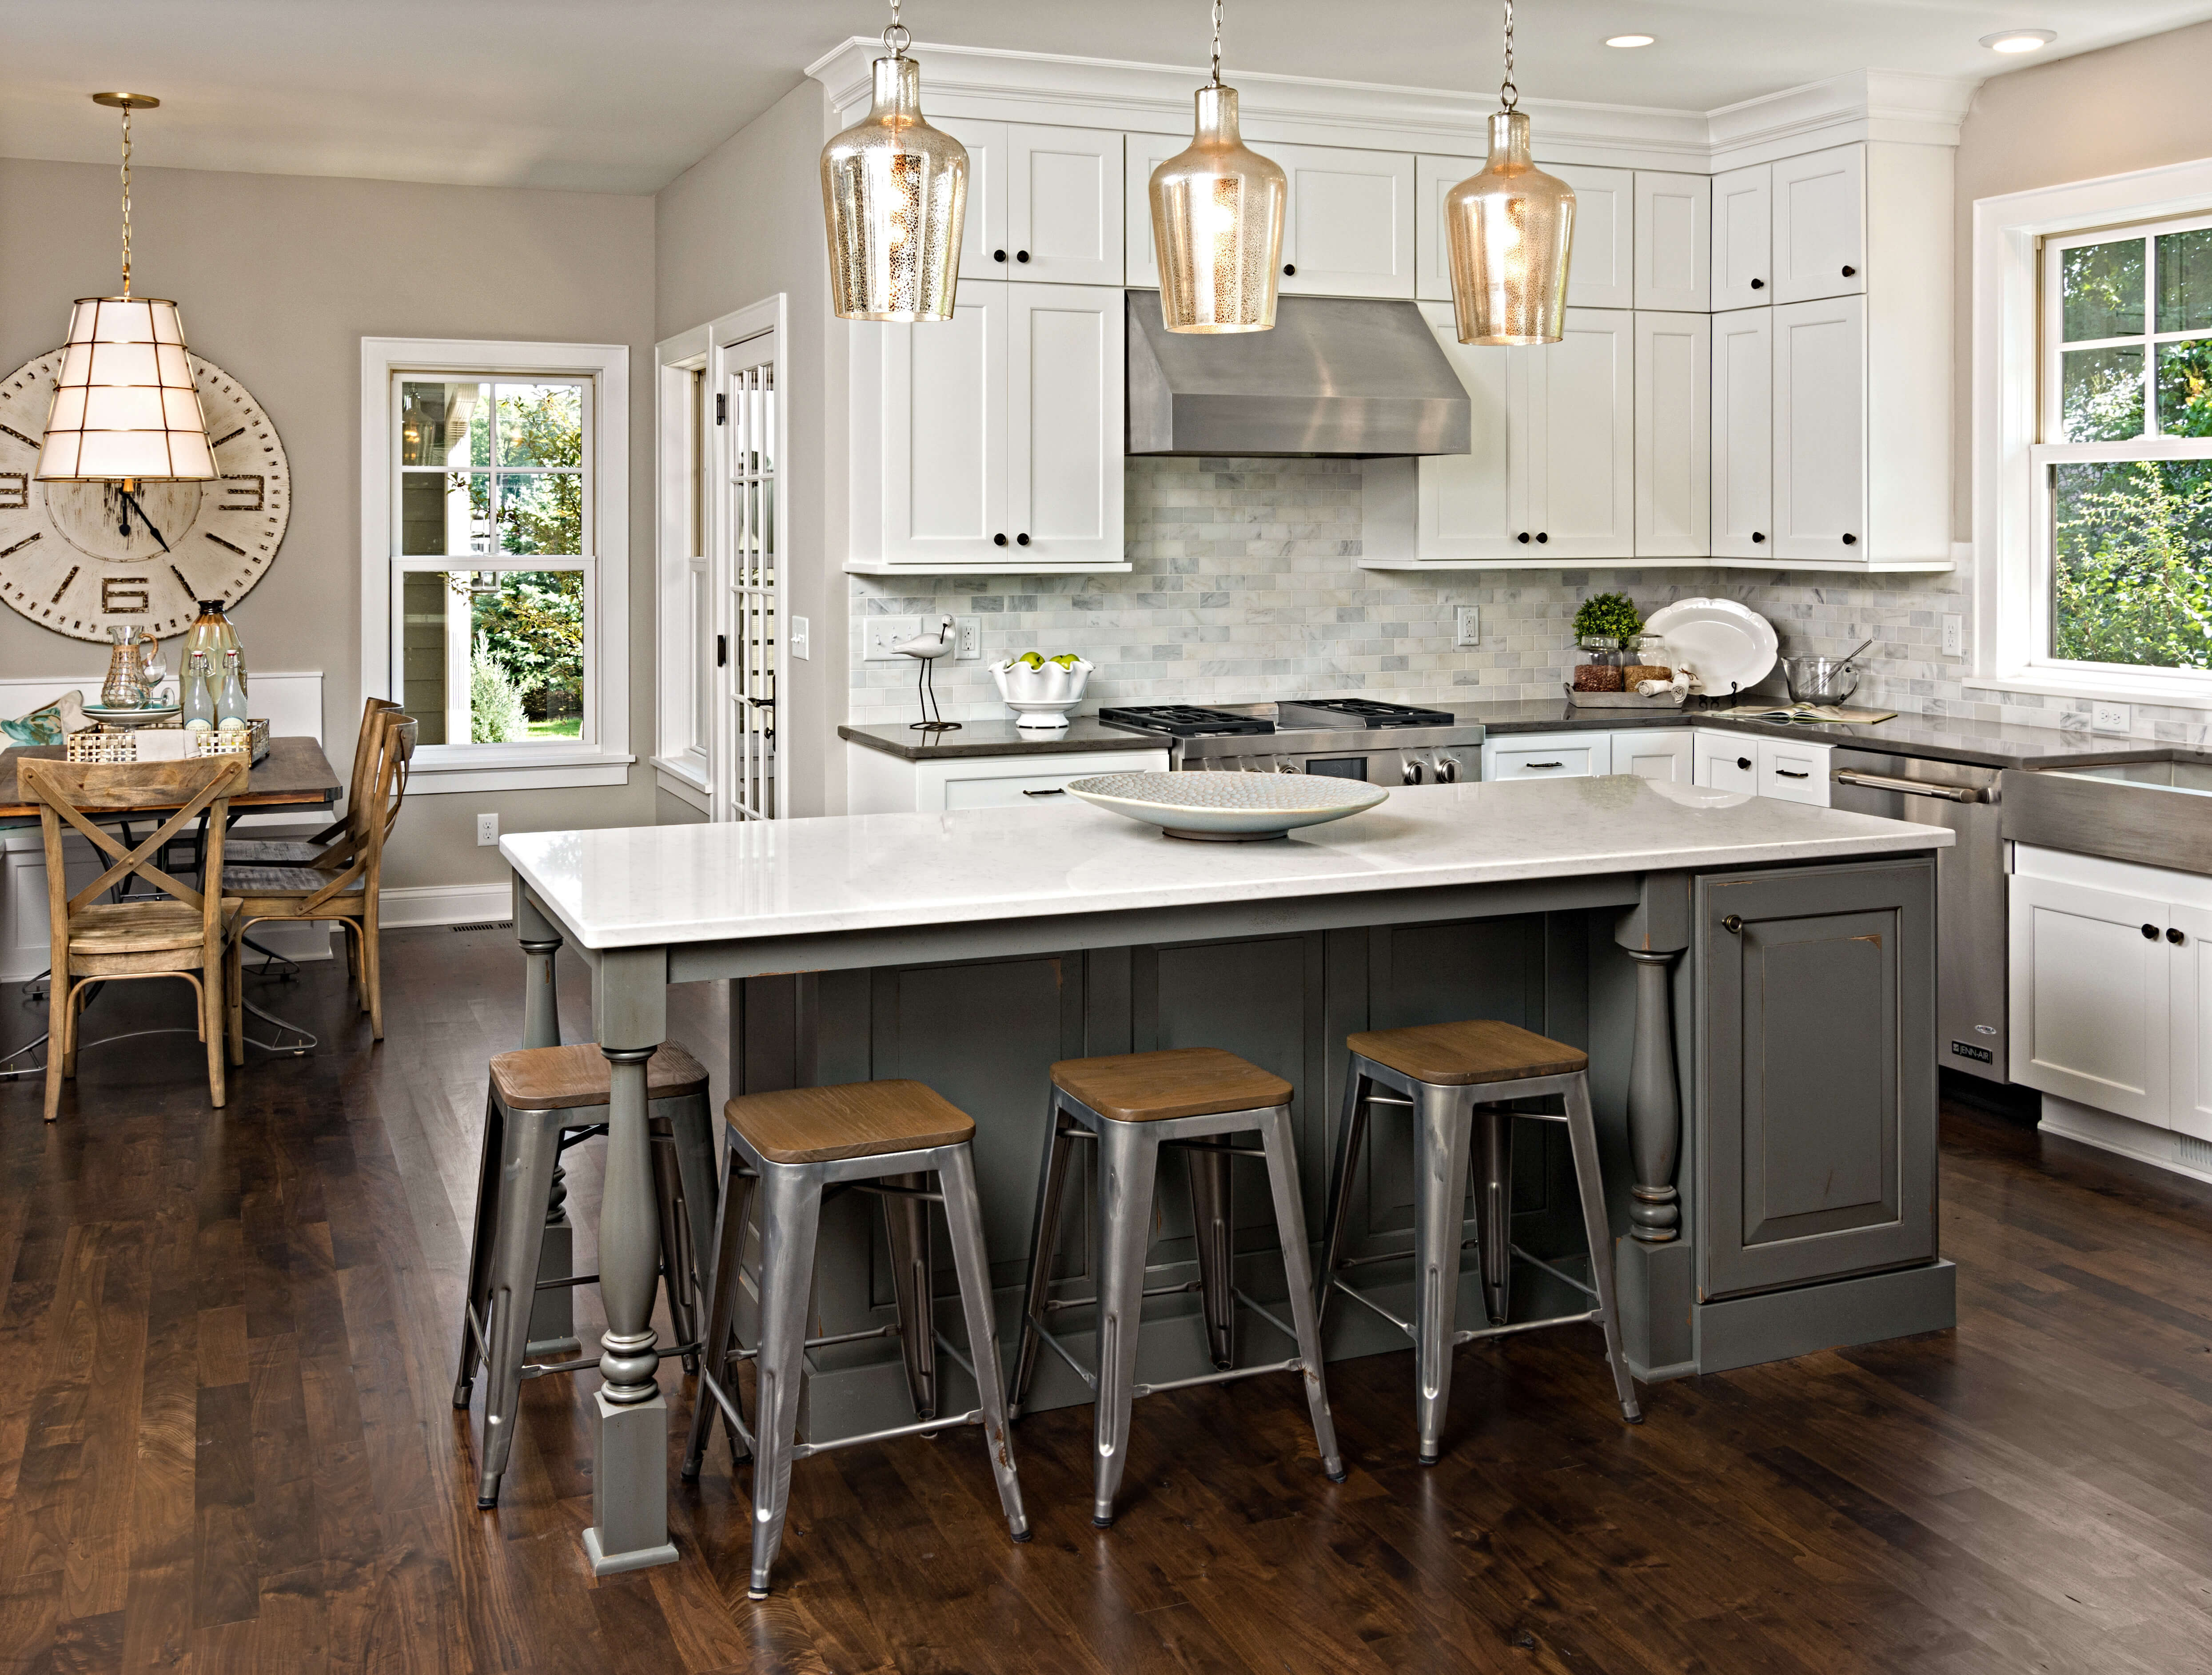 Dura Supreme Cabinetry kitchen featuring a kitchen island with a Heritage Paint finish. Kitchen design by Kristen Peck of Knight Construction Design, Inc., Minnesota.